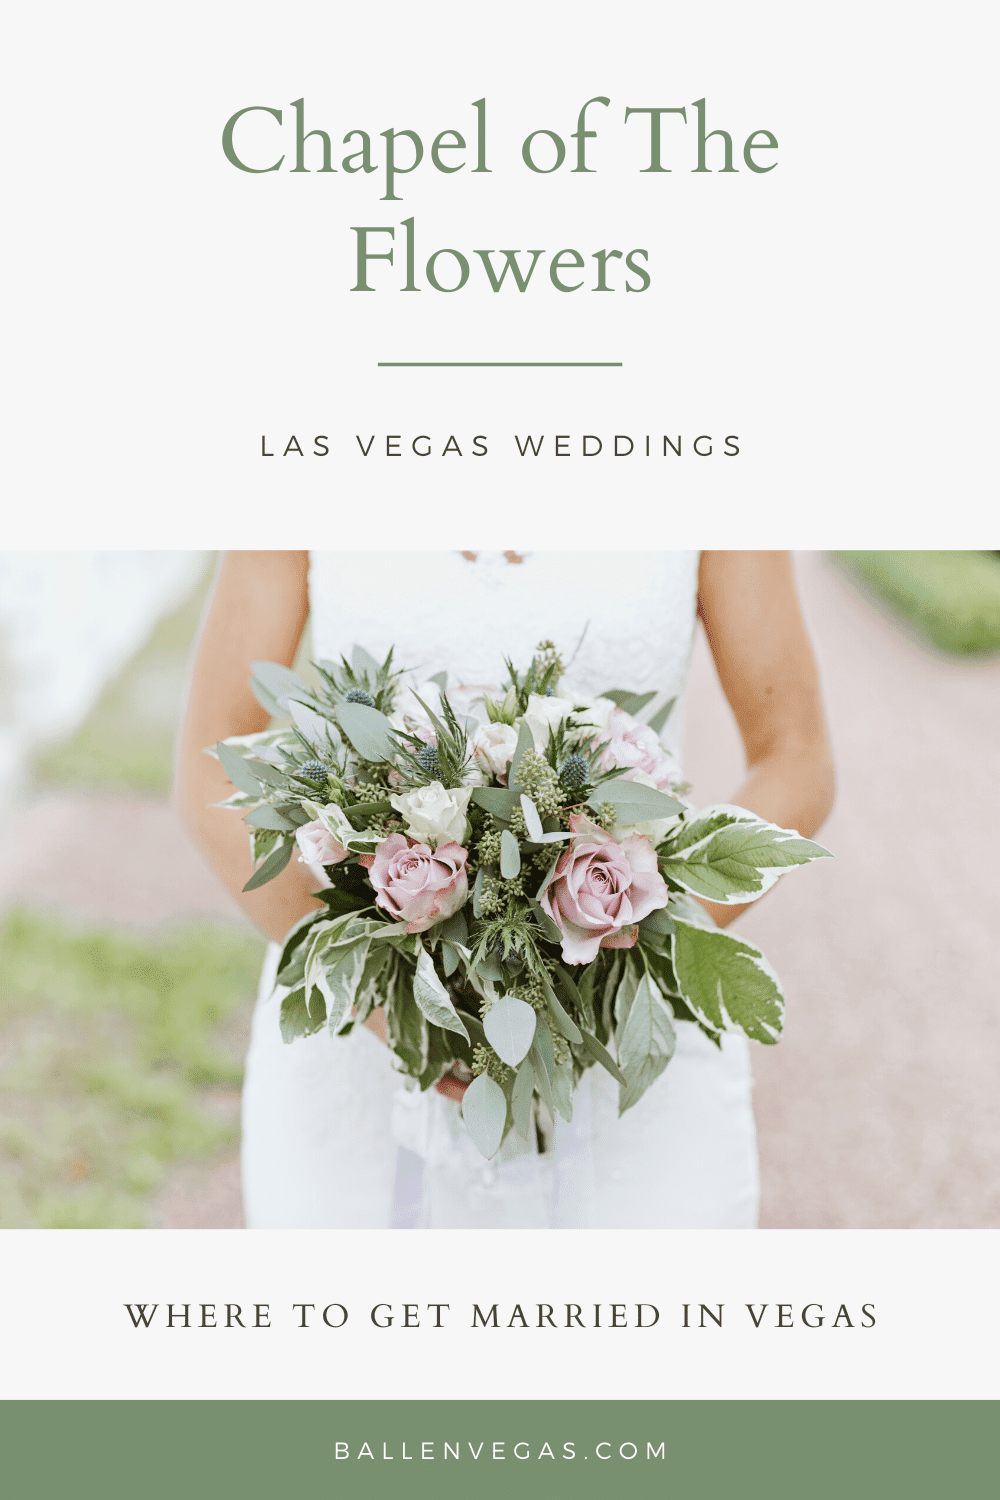 Chapel of the Flowers, a place to get married in Las Vegas, has been the recipient of several awards and featured in The Knot's Best of Weddings feature for several years.